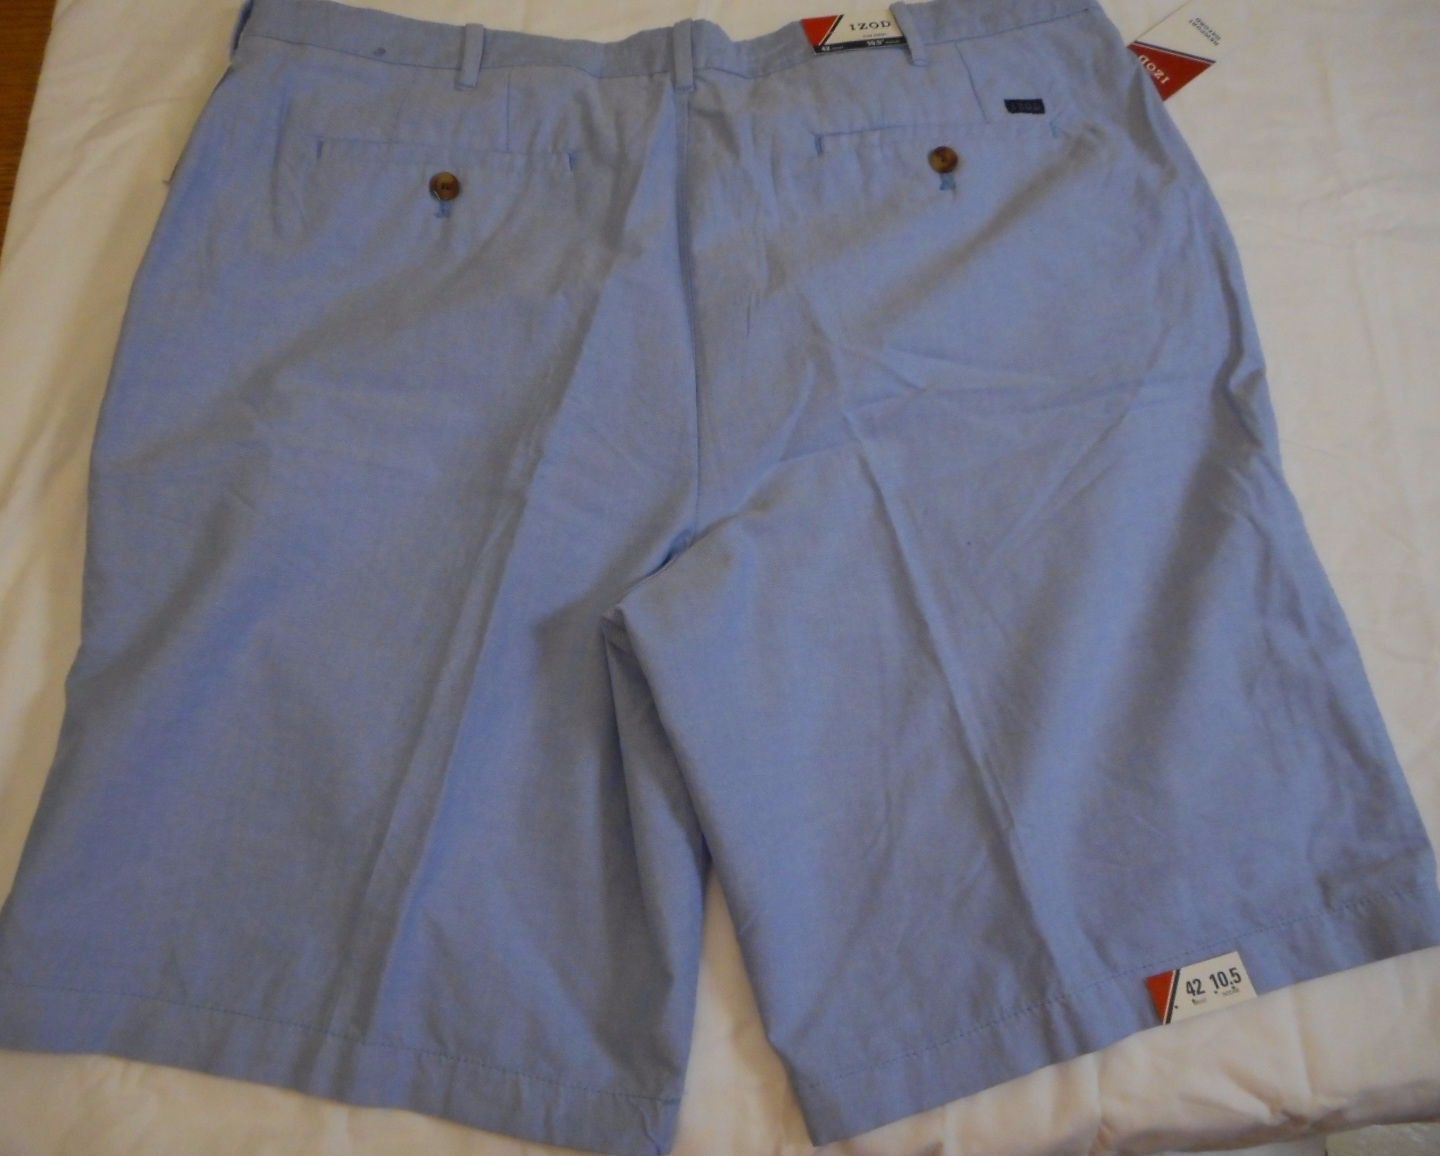 IZOD Men's Flat Front Shorts Newport Oxford Blue Revival Size 42W NEW